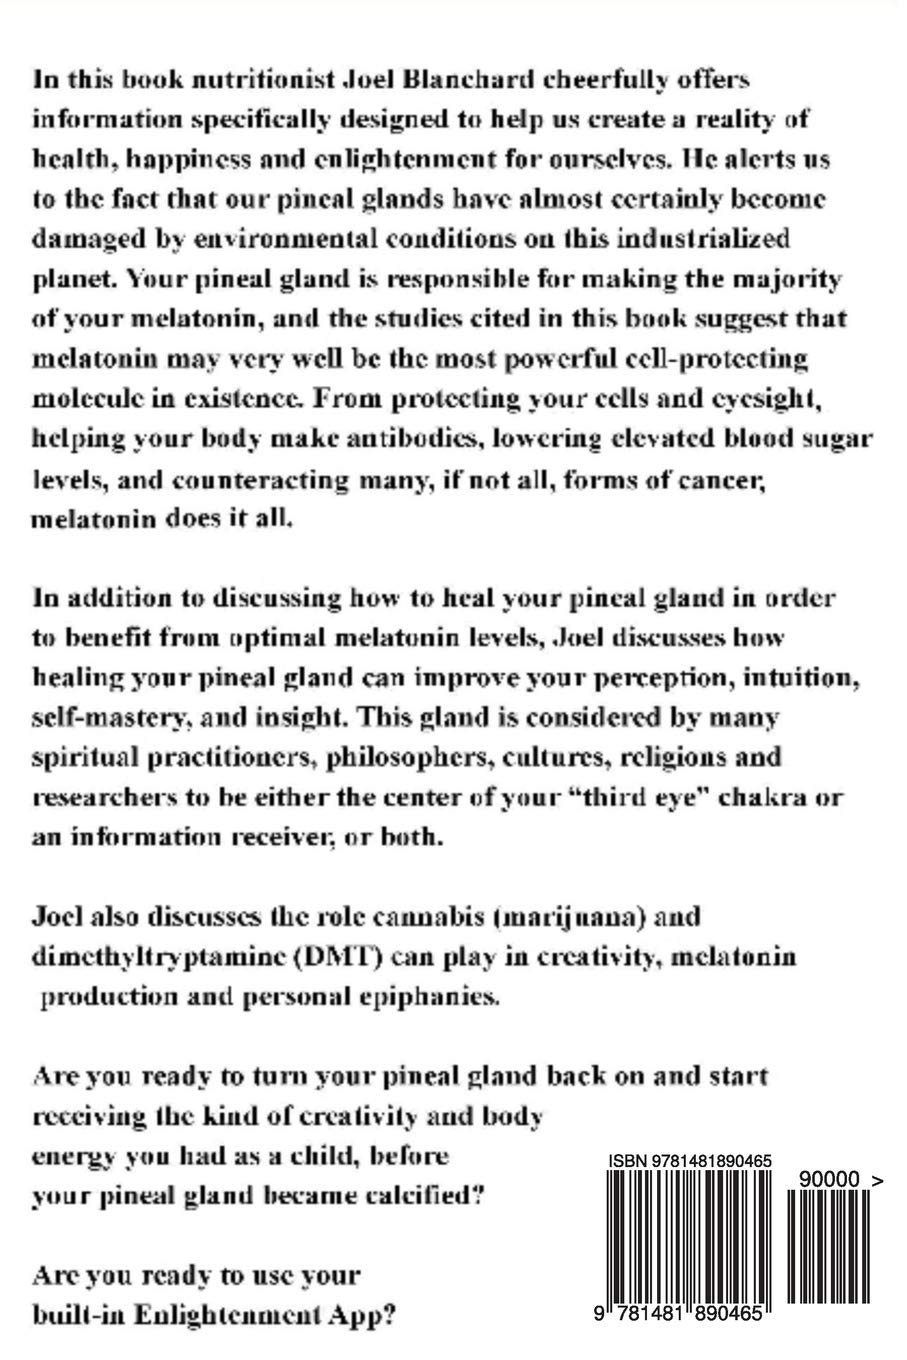 How to Heal your Pineal Gland to facilitate Enlightenment optimize Melatonin and Live Longer: The Enlightenment App: Joel Blanchard: 9781481890465: ...